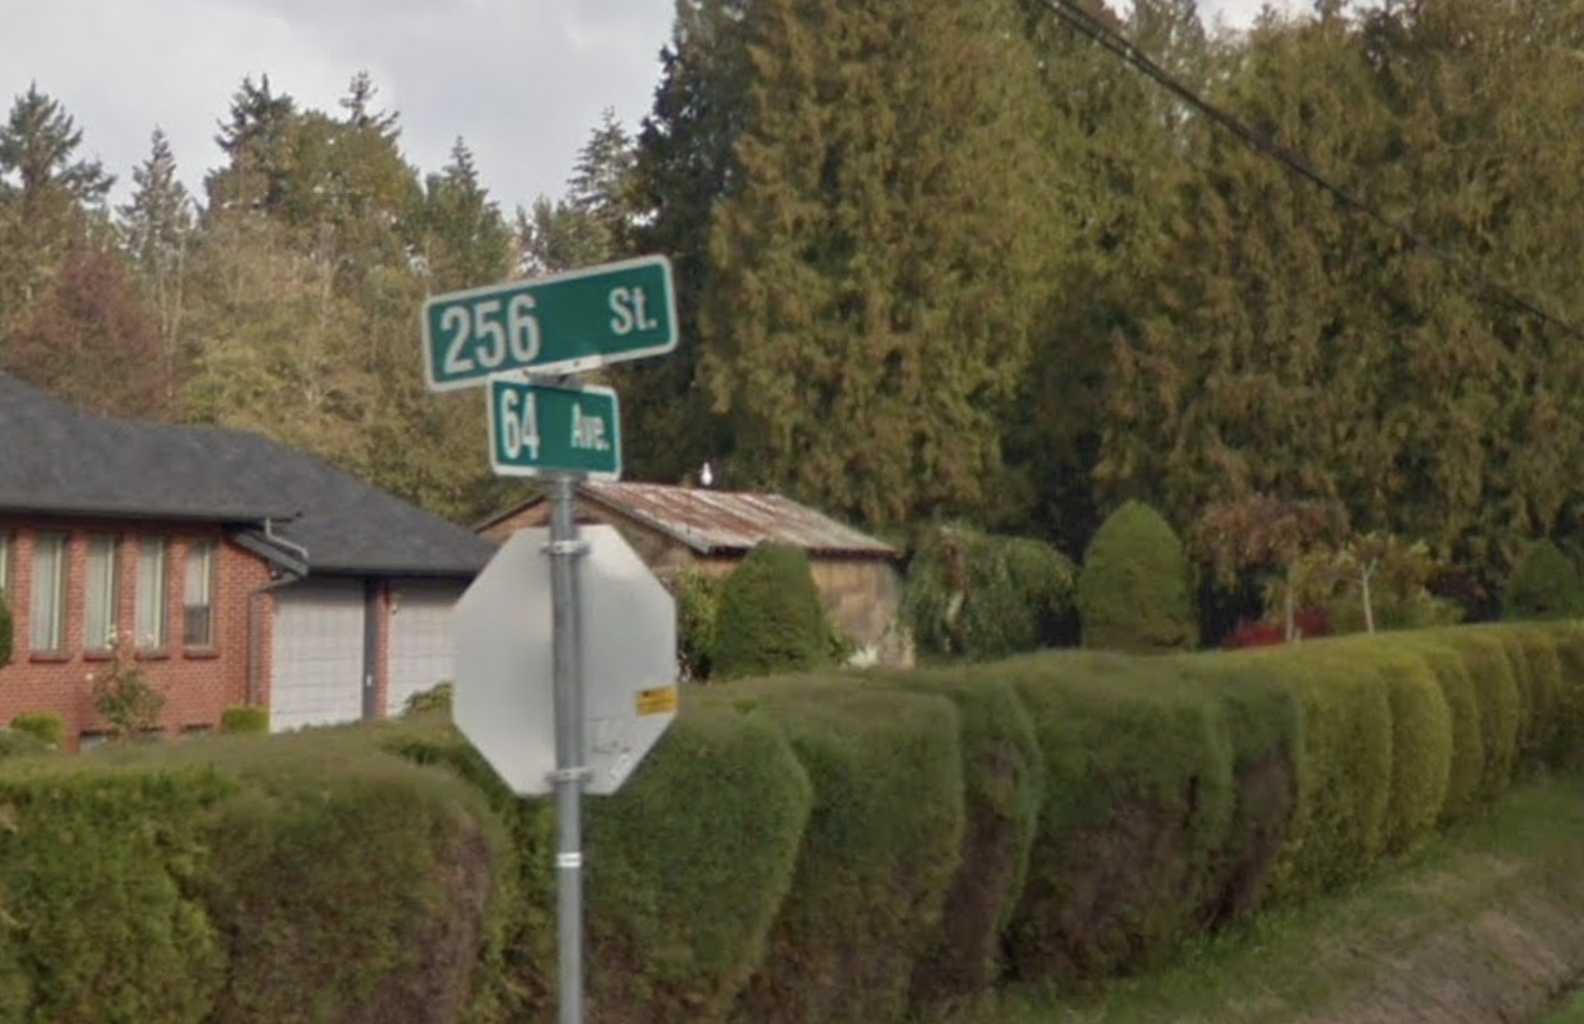 Motorcyclist Gravely Injured after a Collision in Aldergrove